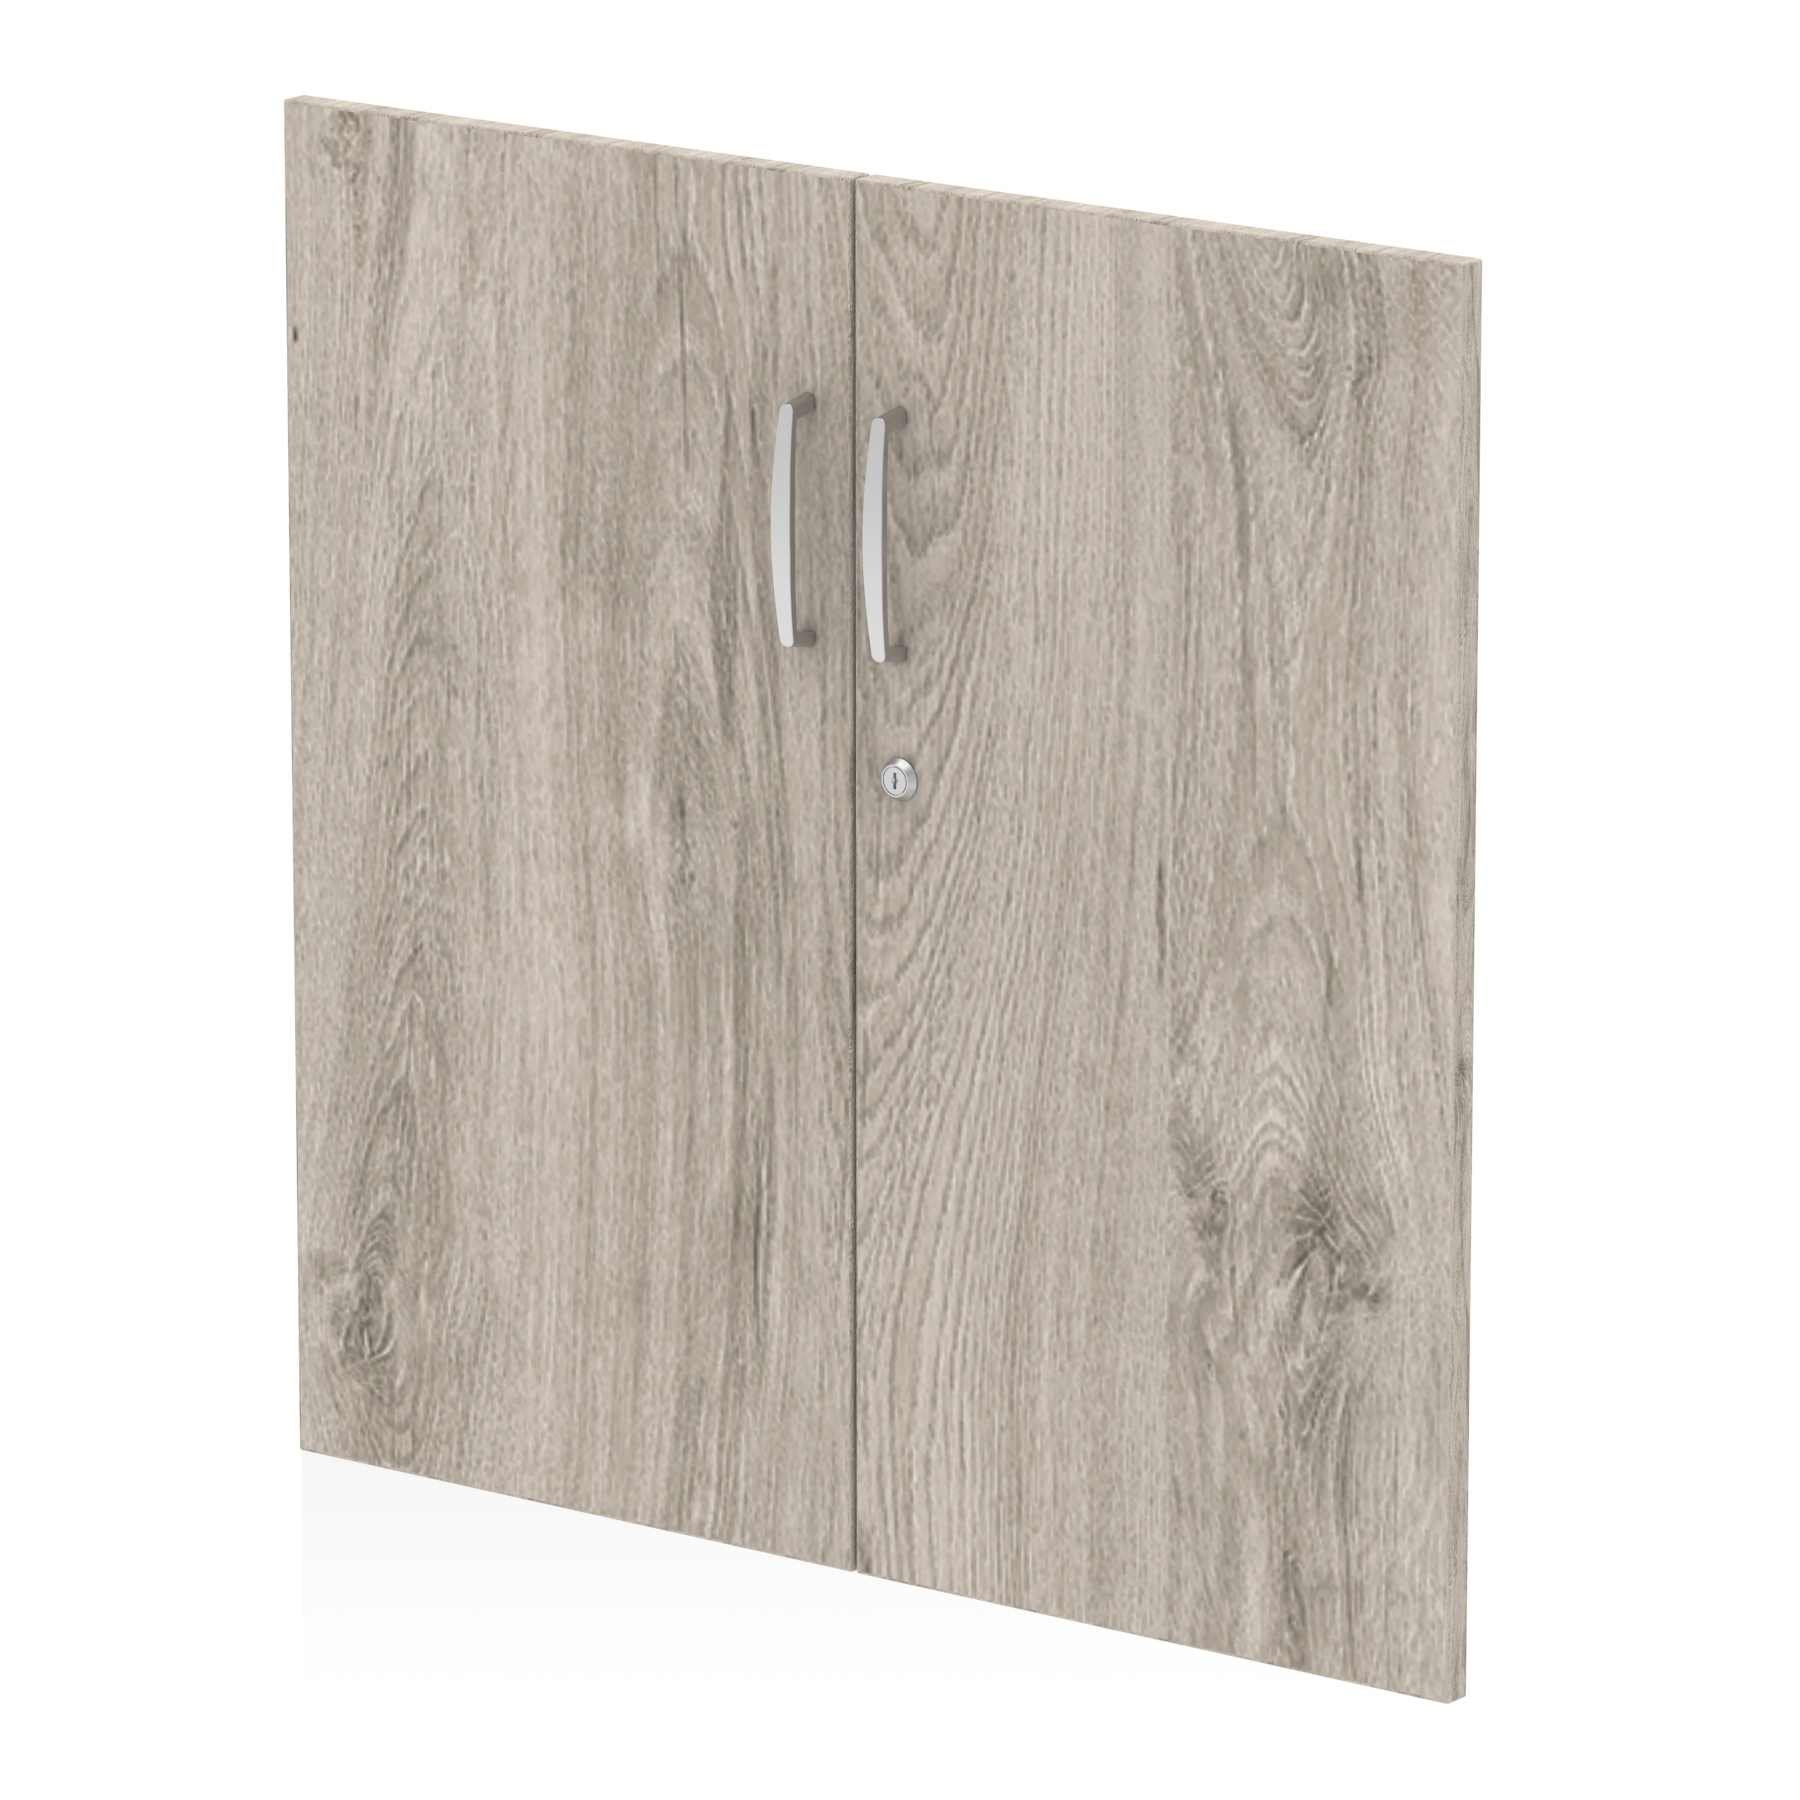 Filing cabinets or accesories Trexus Door Pack For 800mm High Cupboard Grey Oak Ref I003231